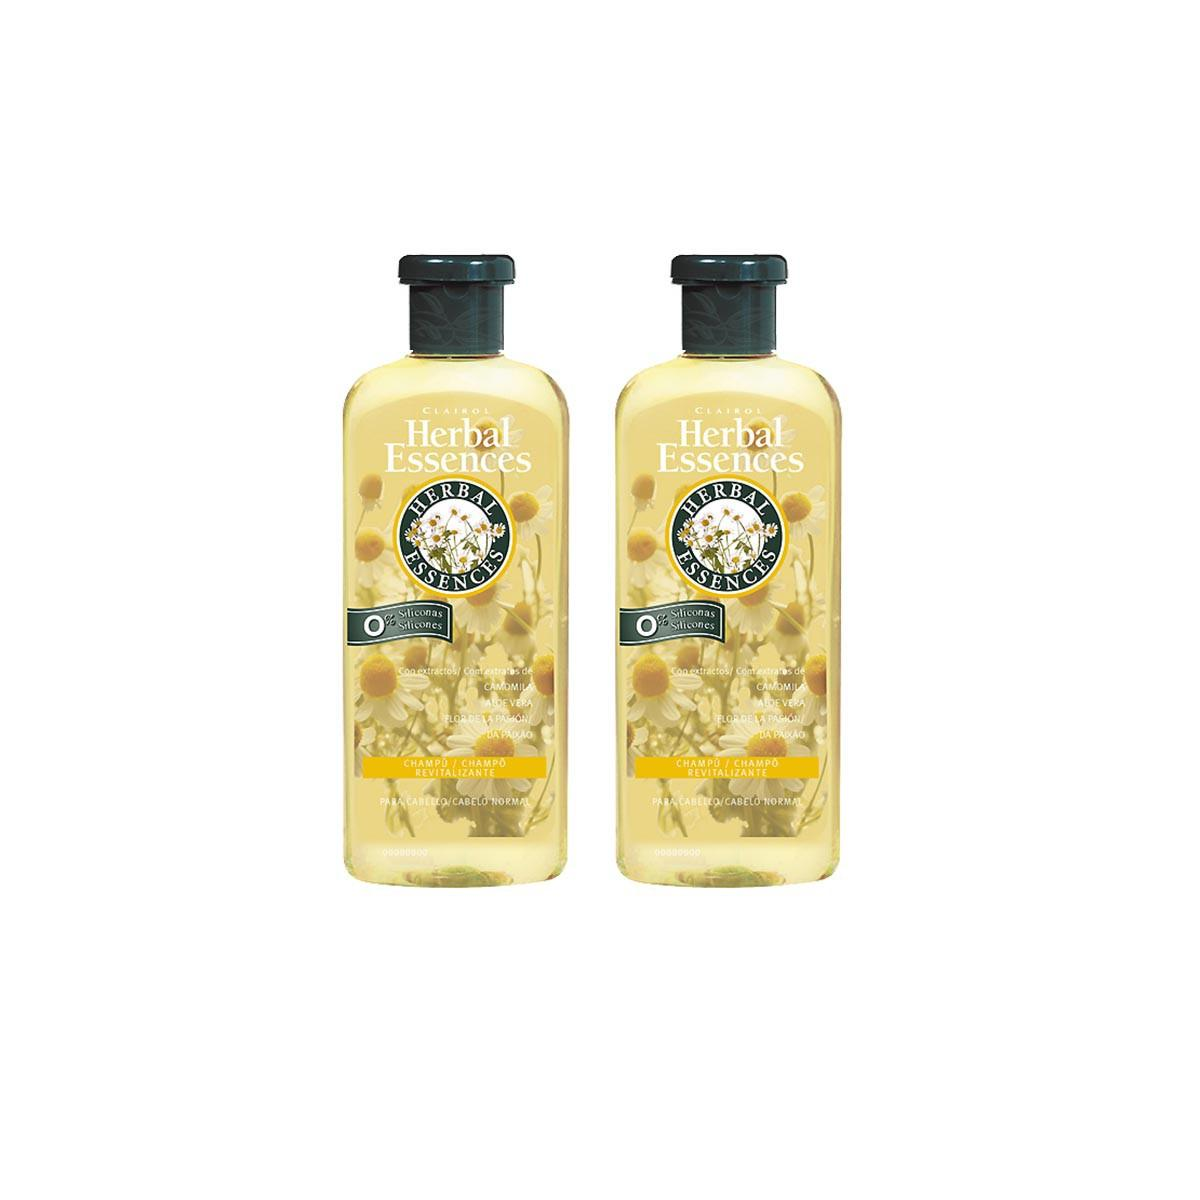 Consumo Clairol Herbal Essences Camomila And Aloe Vera Shampoo 400 ml Pack Duplo